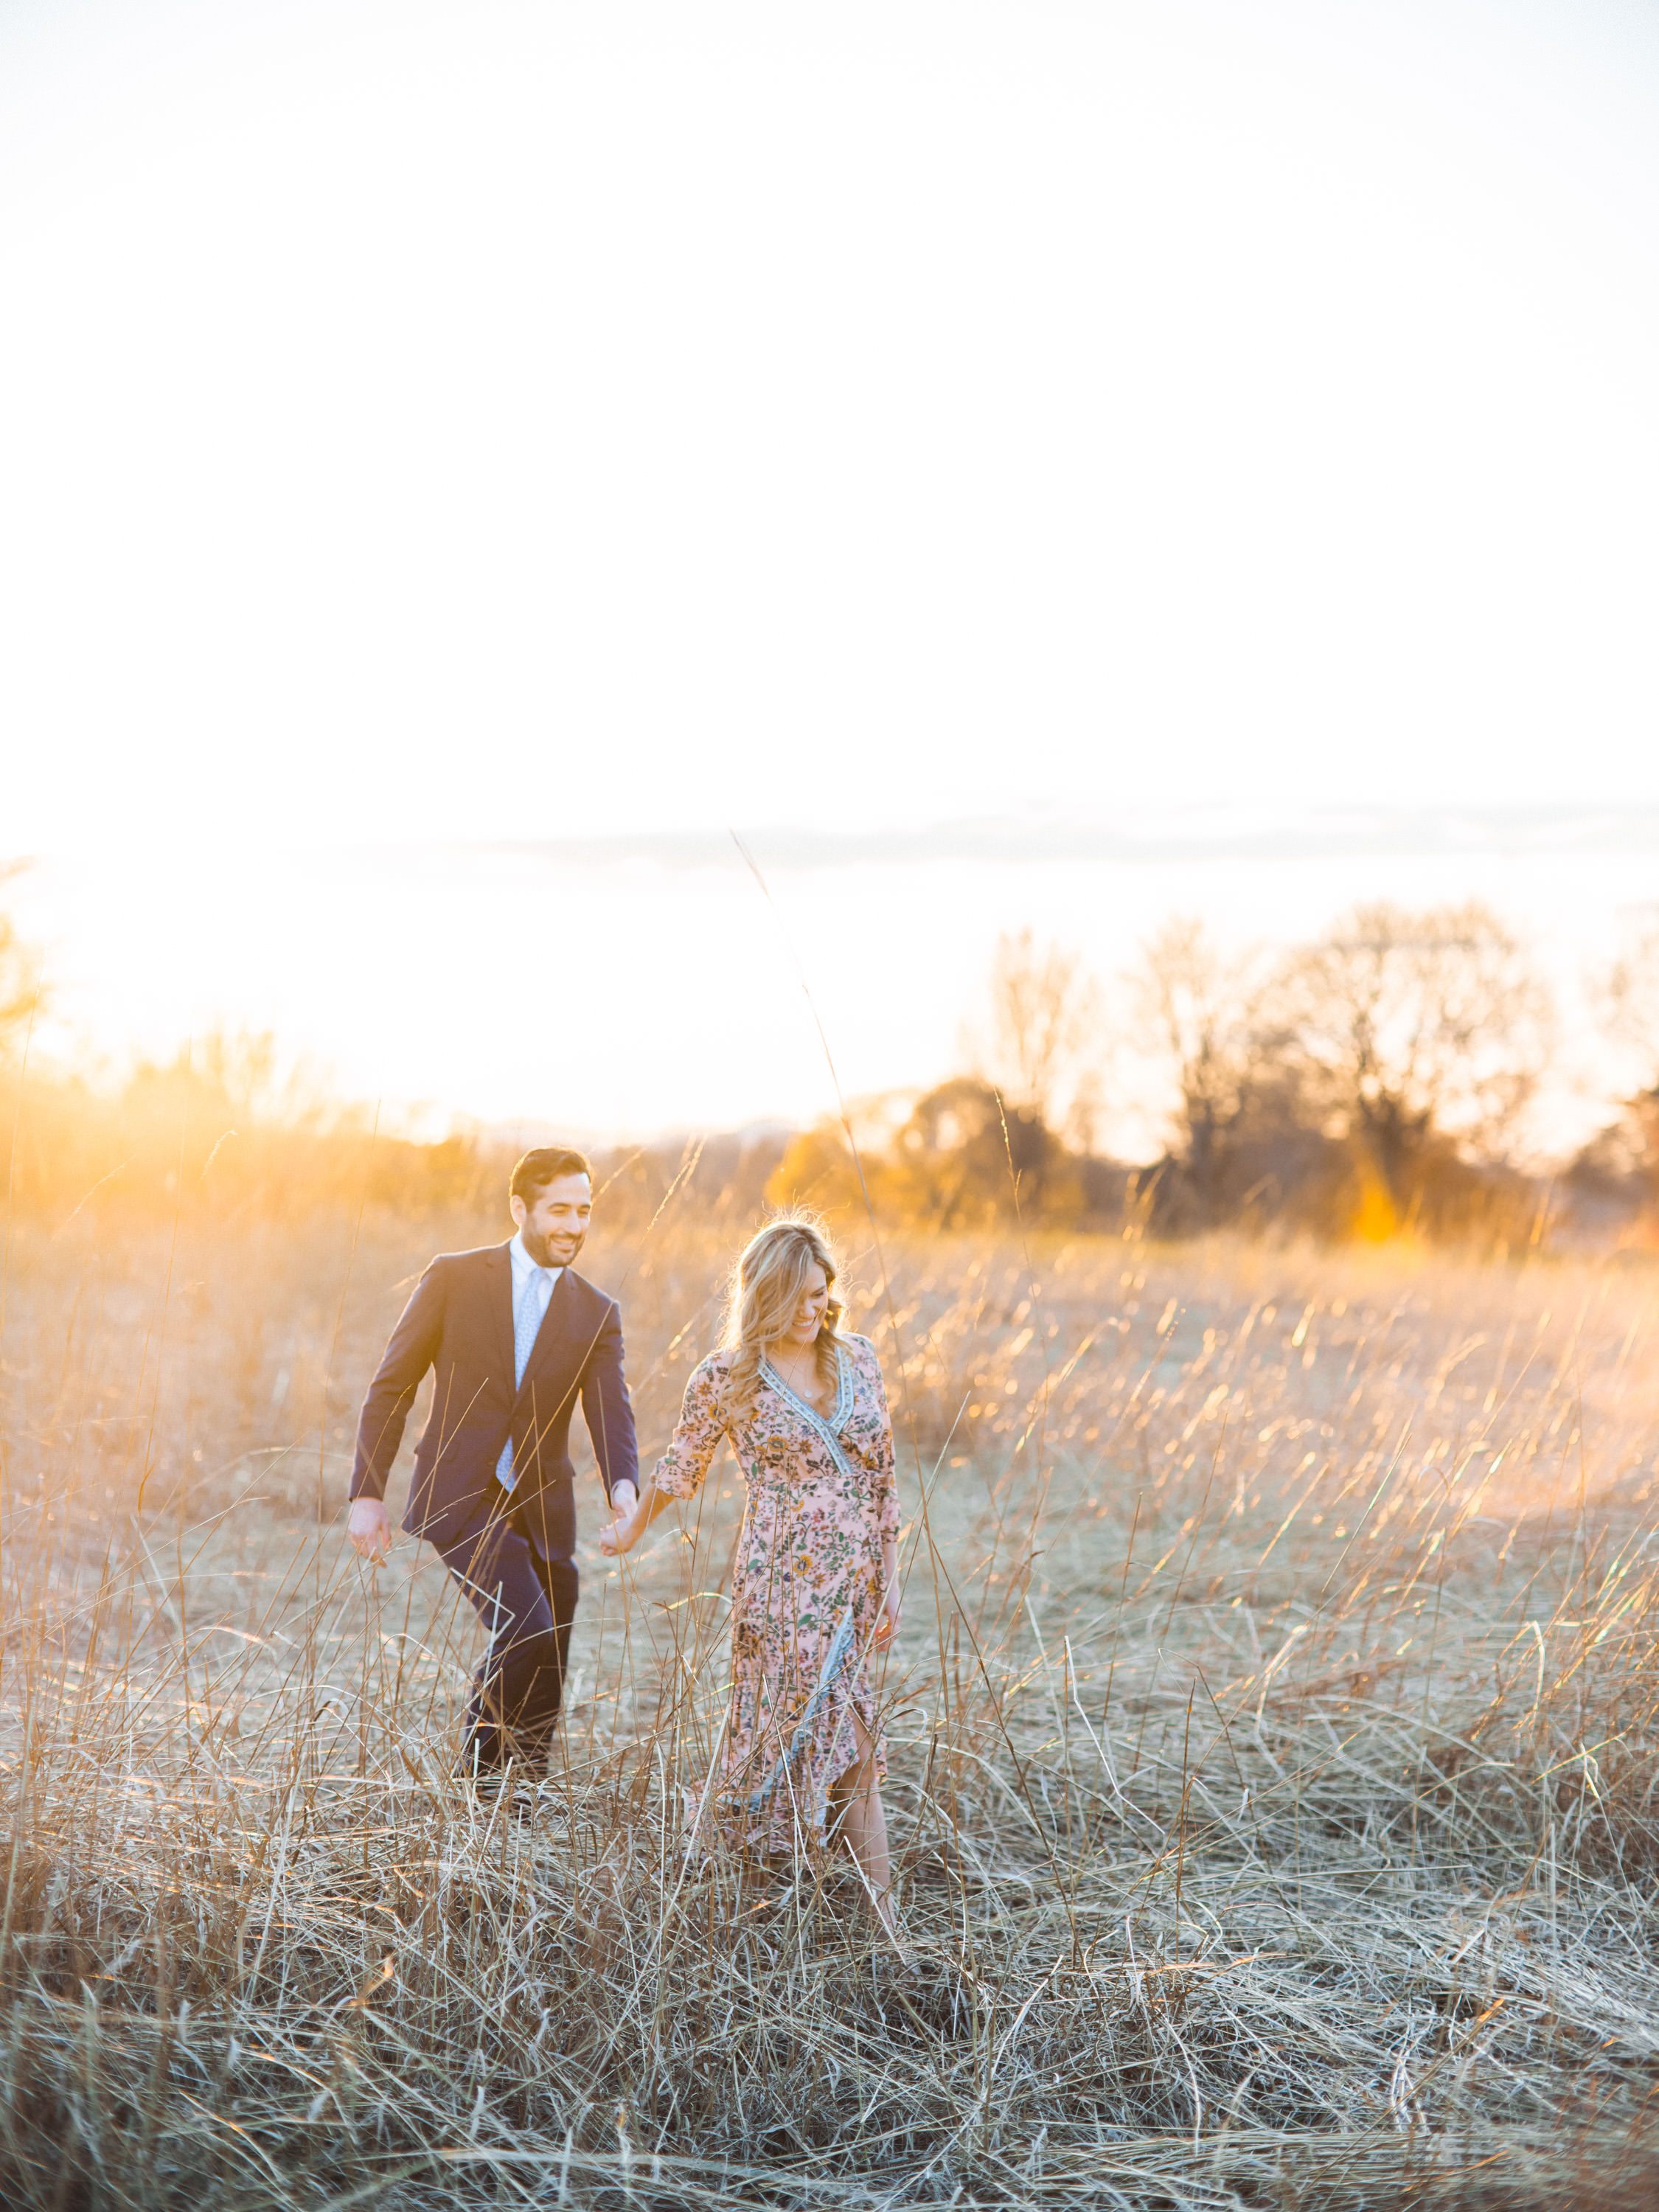 Benny & Sarah Engagement Session at Bernheim Arboretum (Web Use Only)-53.jpg